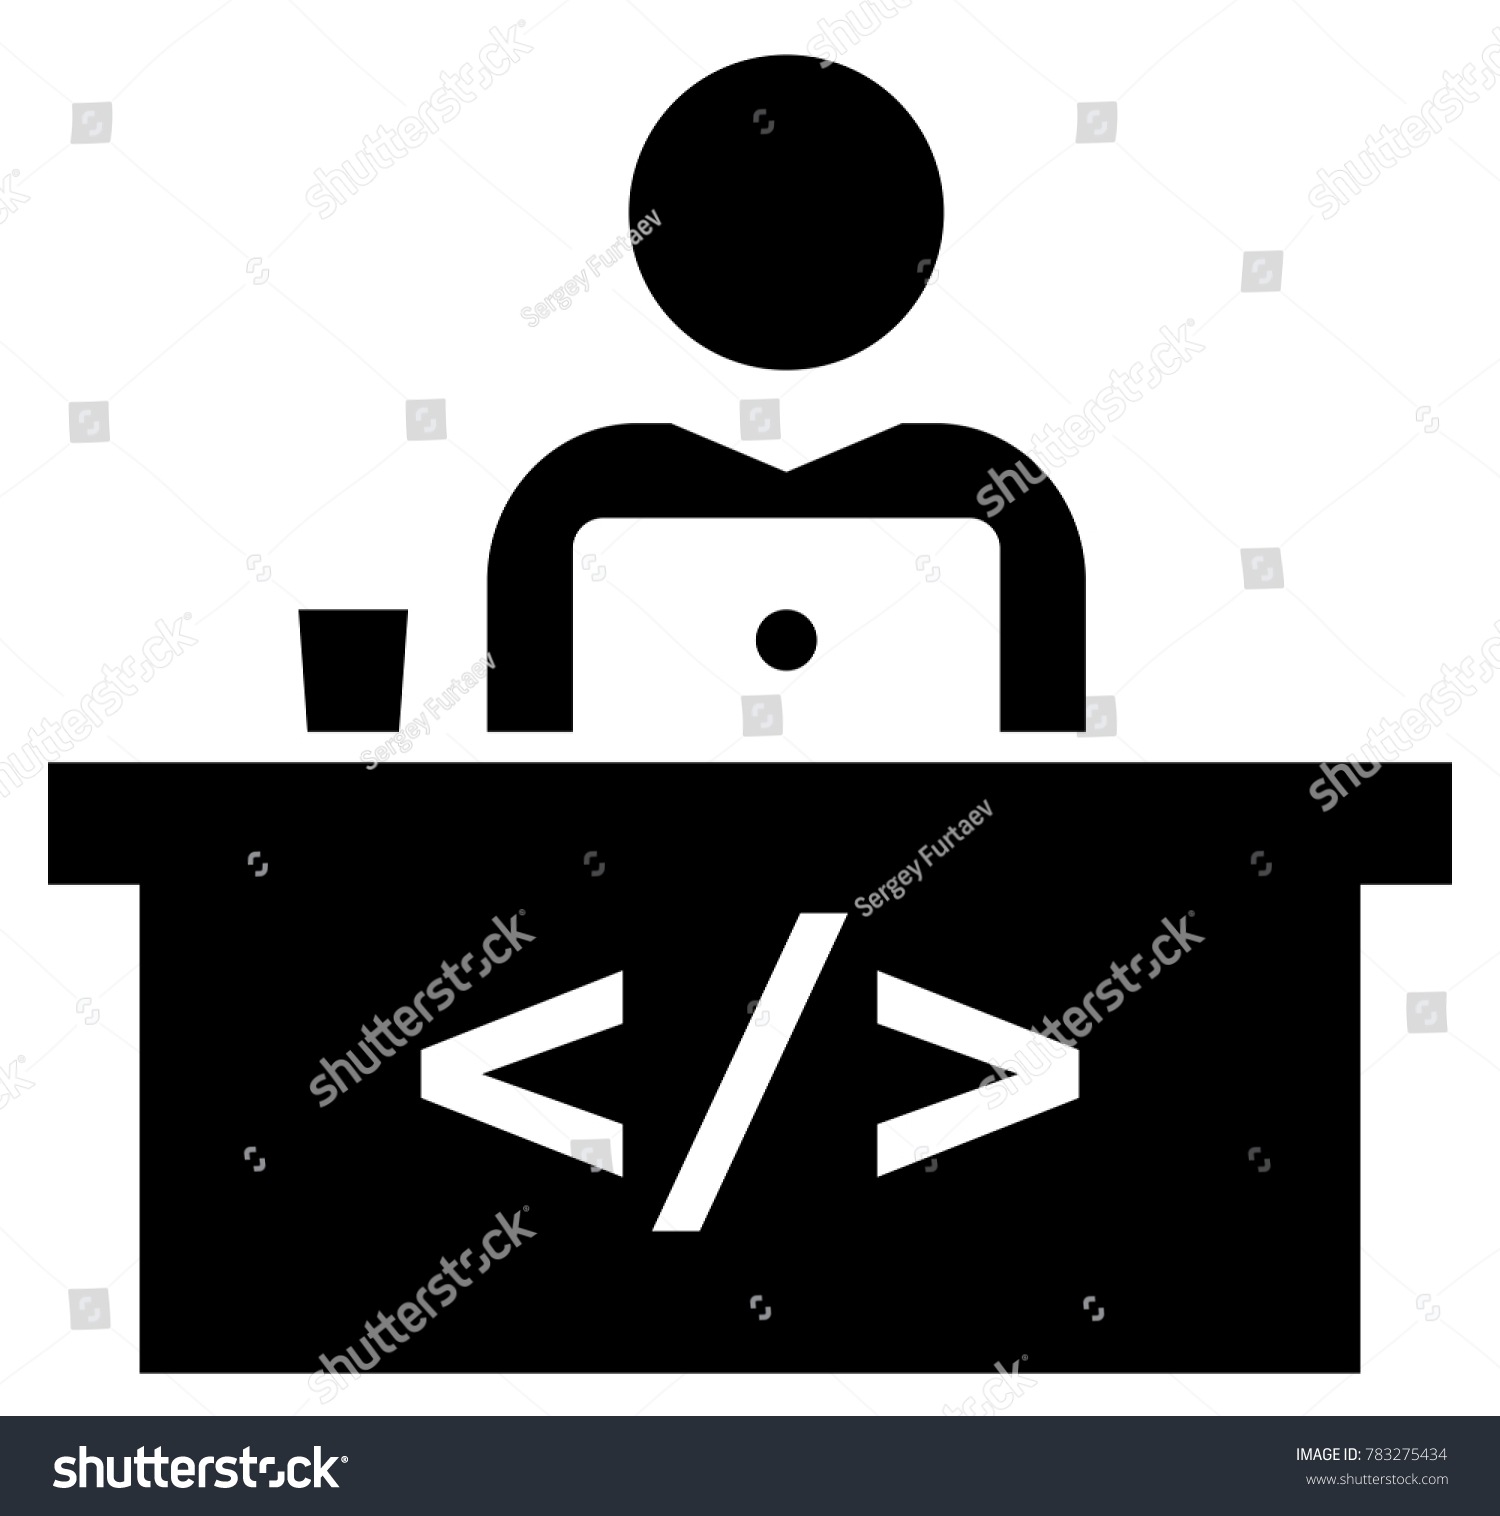 Software developer workspace icon stock vector 783275434 software developer workspace icon biocorpaavc